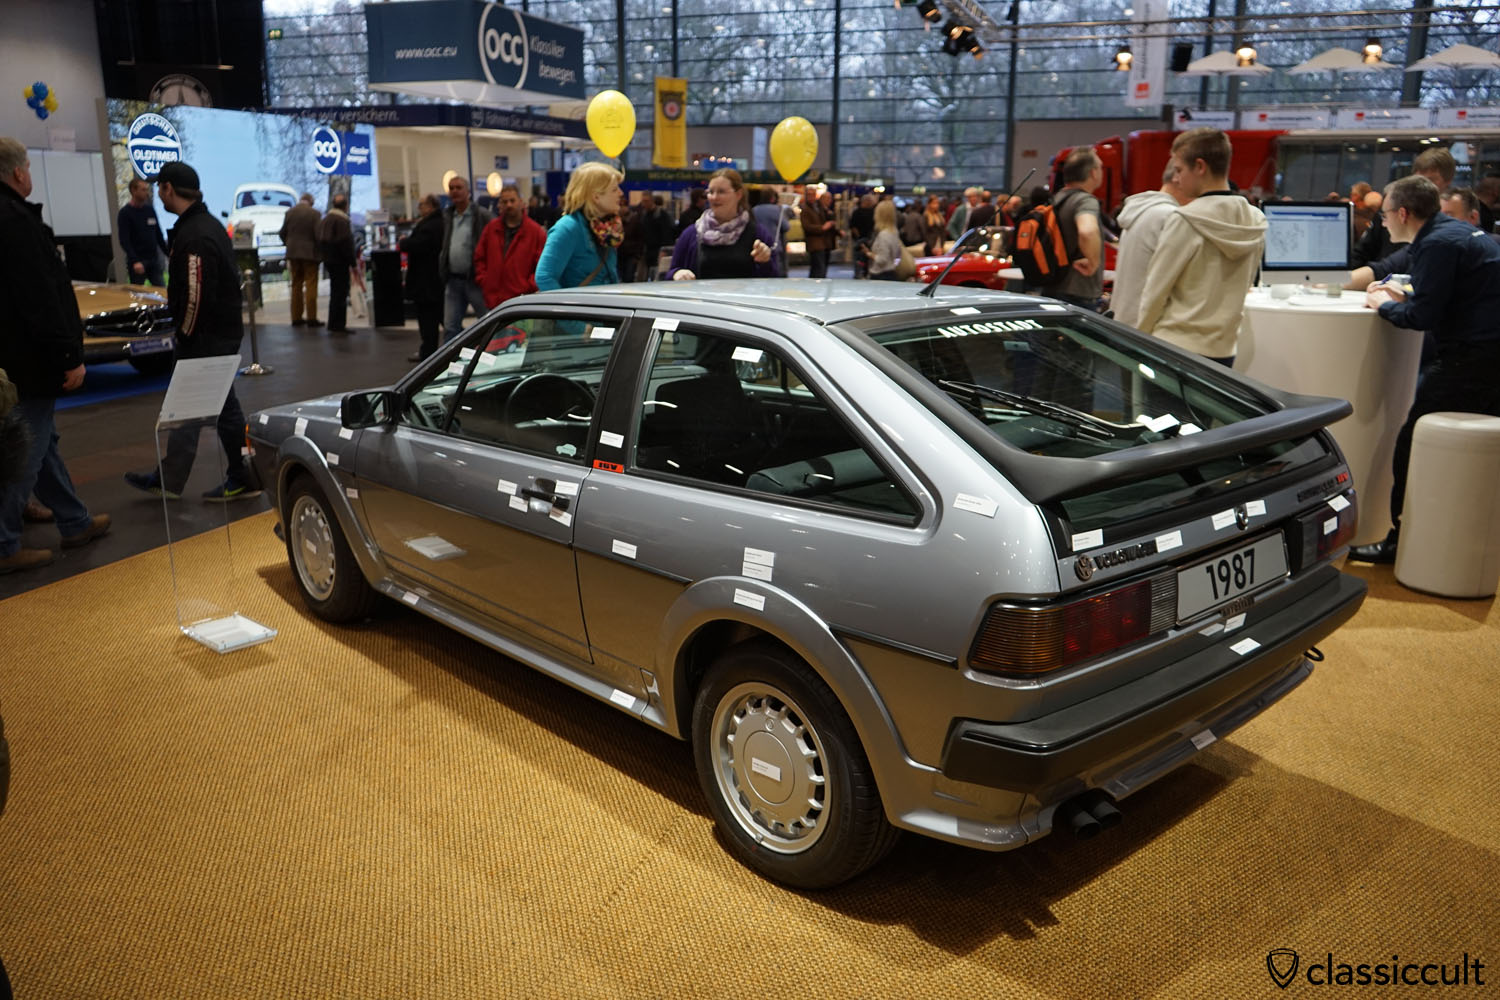 1987 Scirocco 2 GTX 16V, rear view